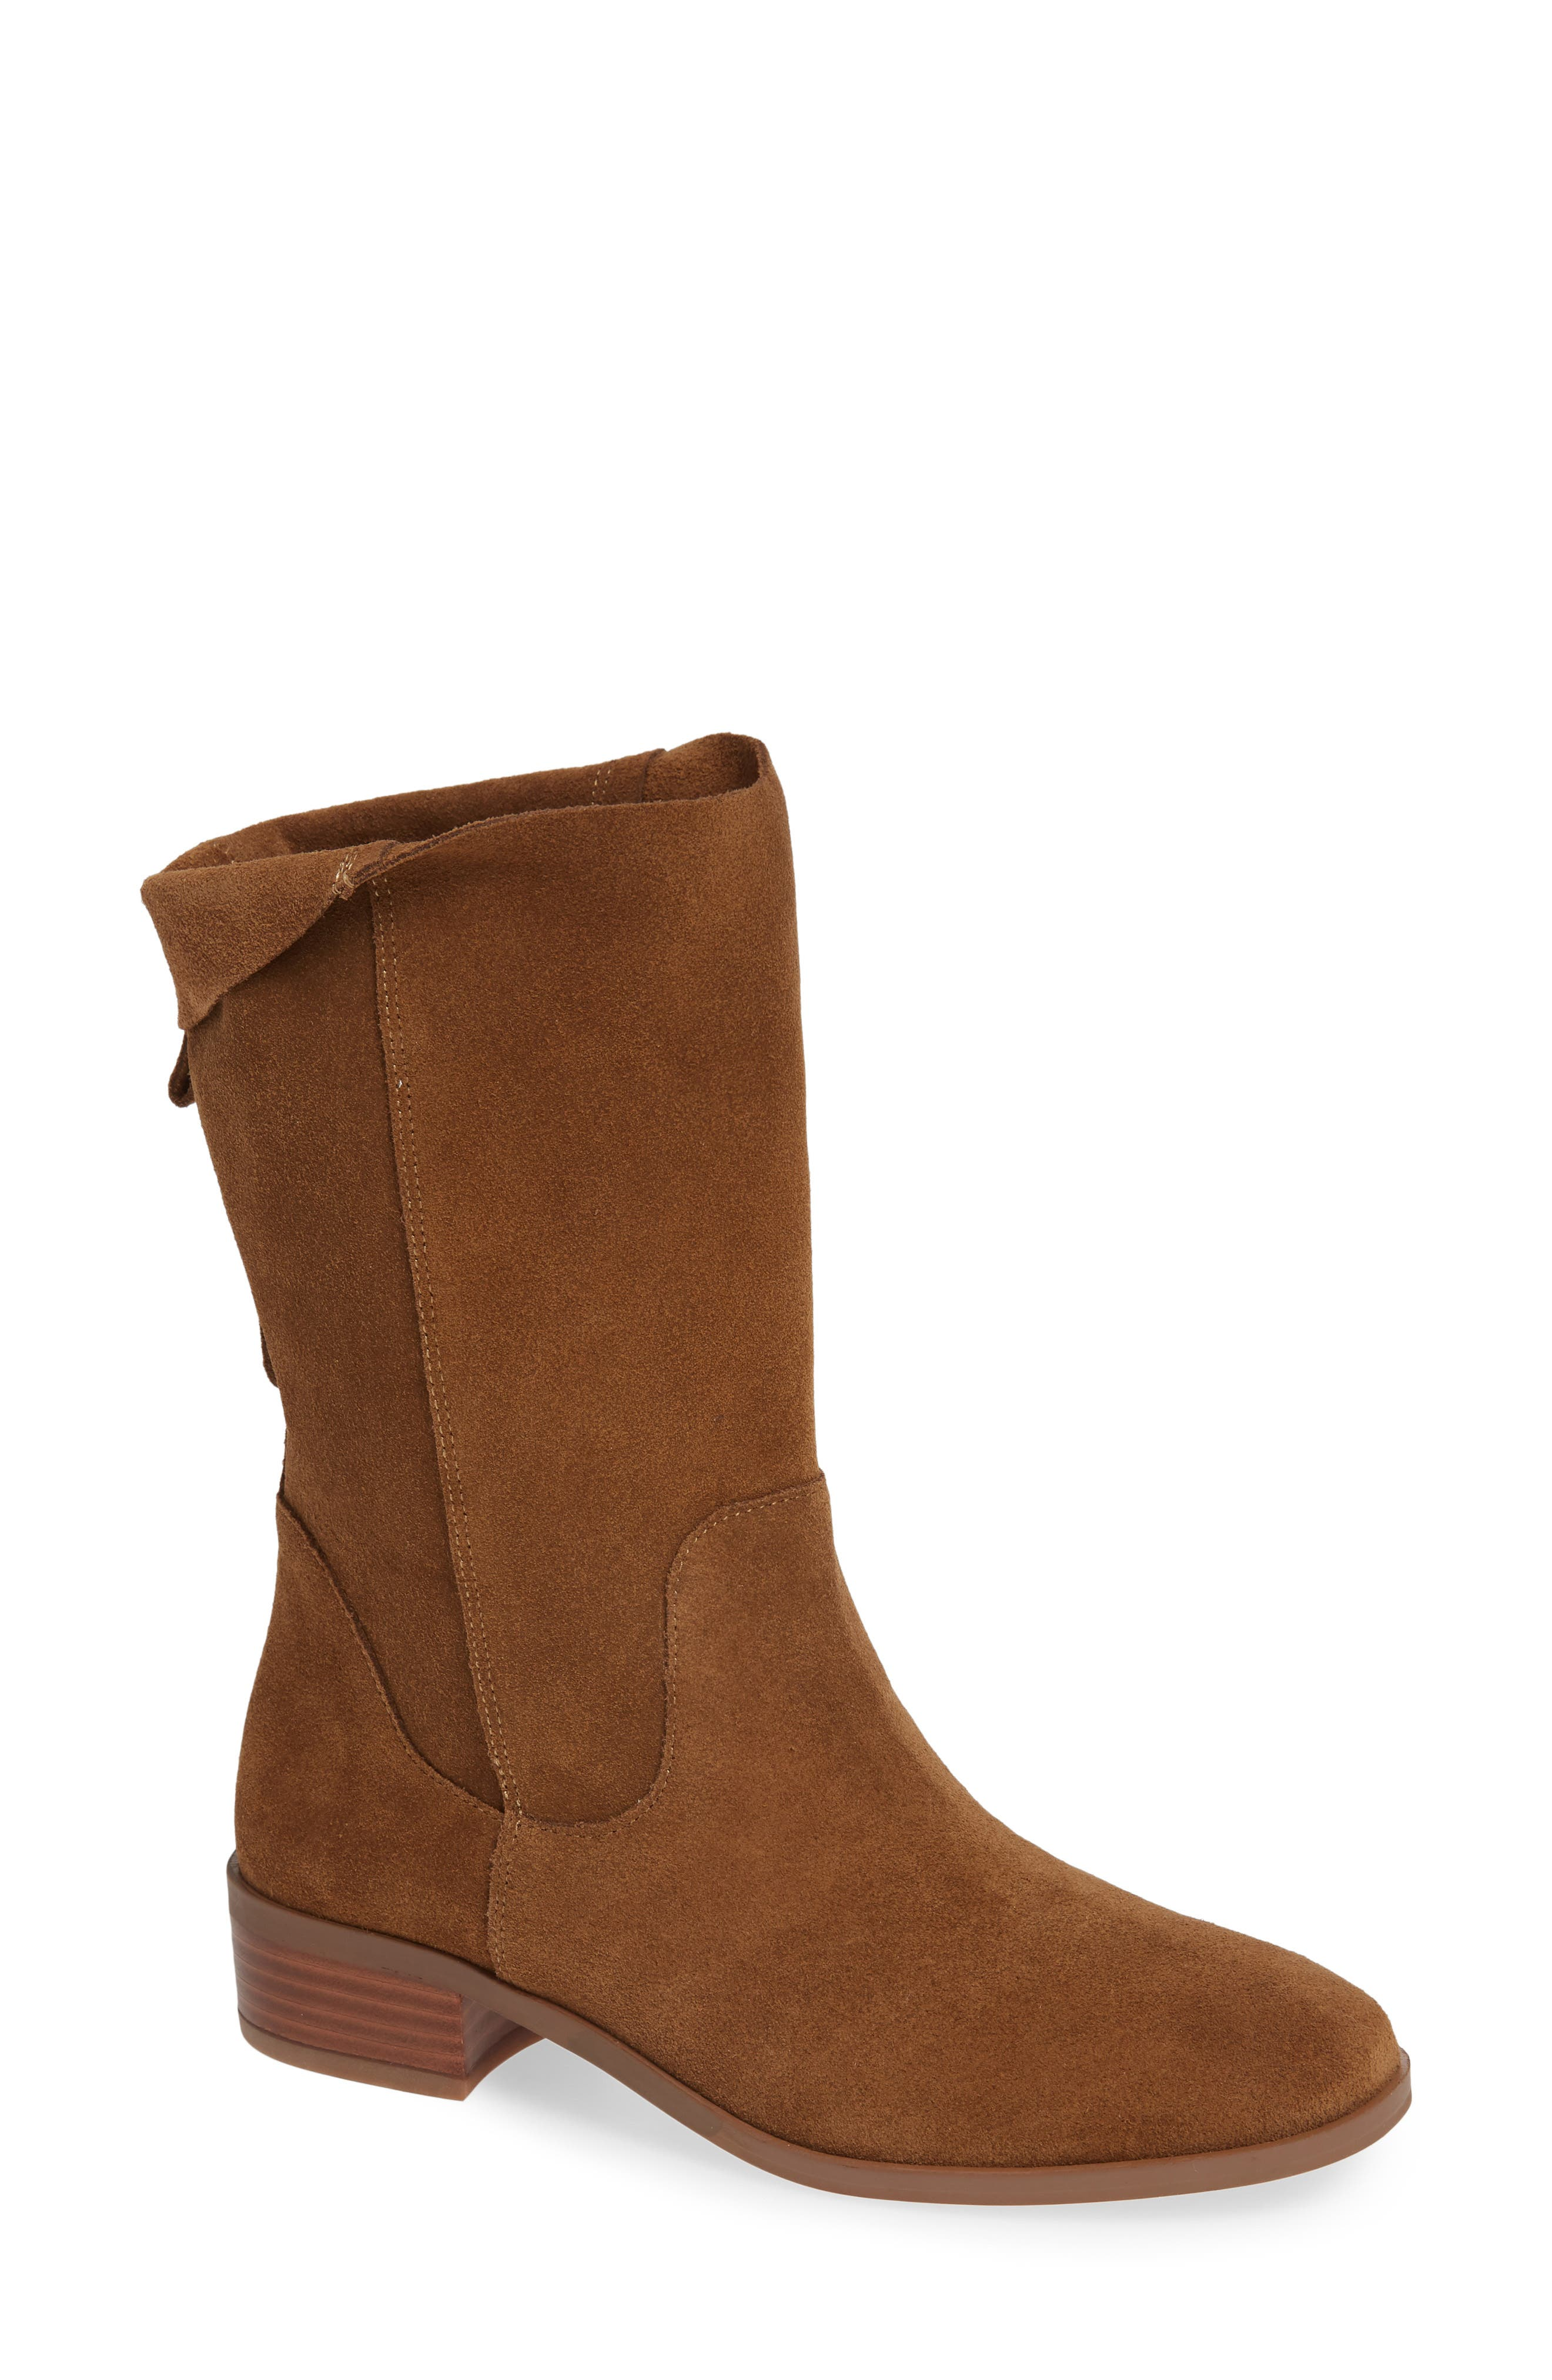 Calanth Bootie,                             Main thumbnail 1, color,                             TOBACCO SUEDE